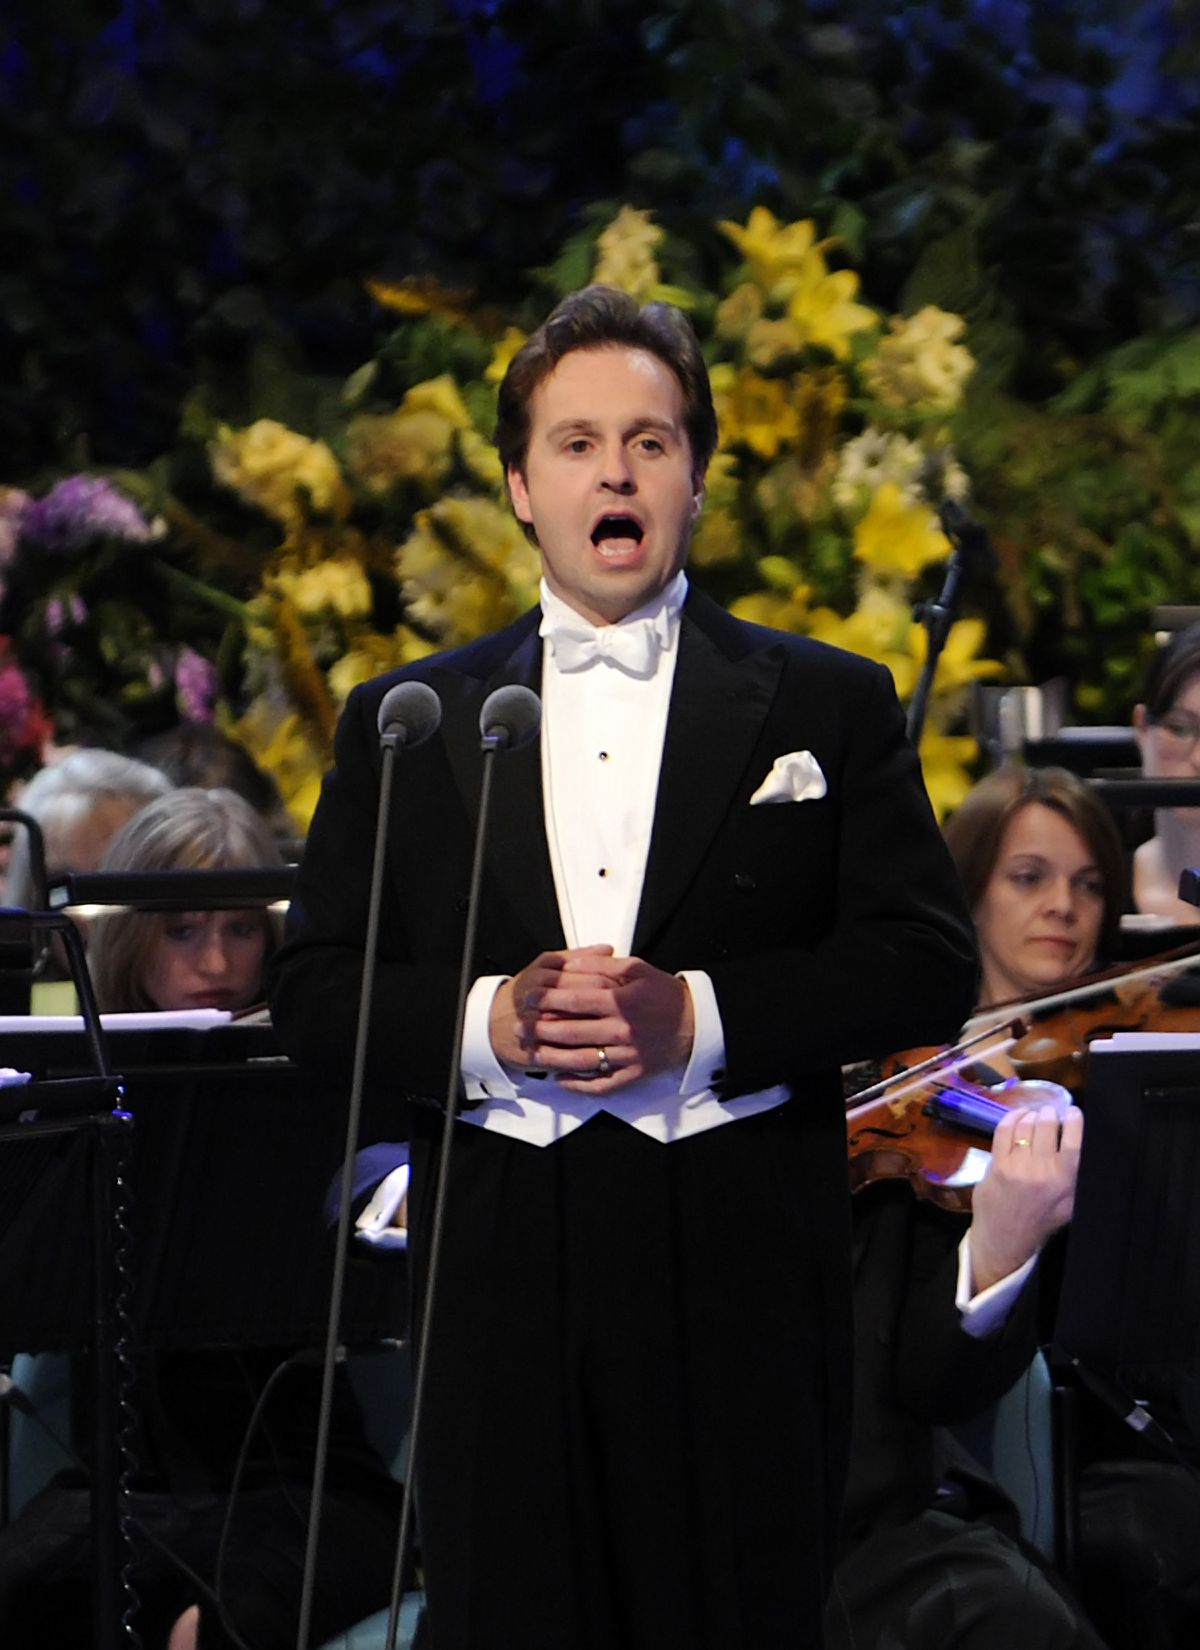 Lancashire-born tenor Alfie Boe performing at the Gala Night of the 62nd Llangollen International Musical Eisteddfod, on July 13, 2008